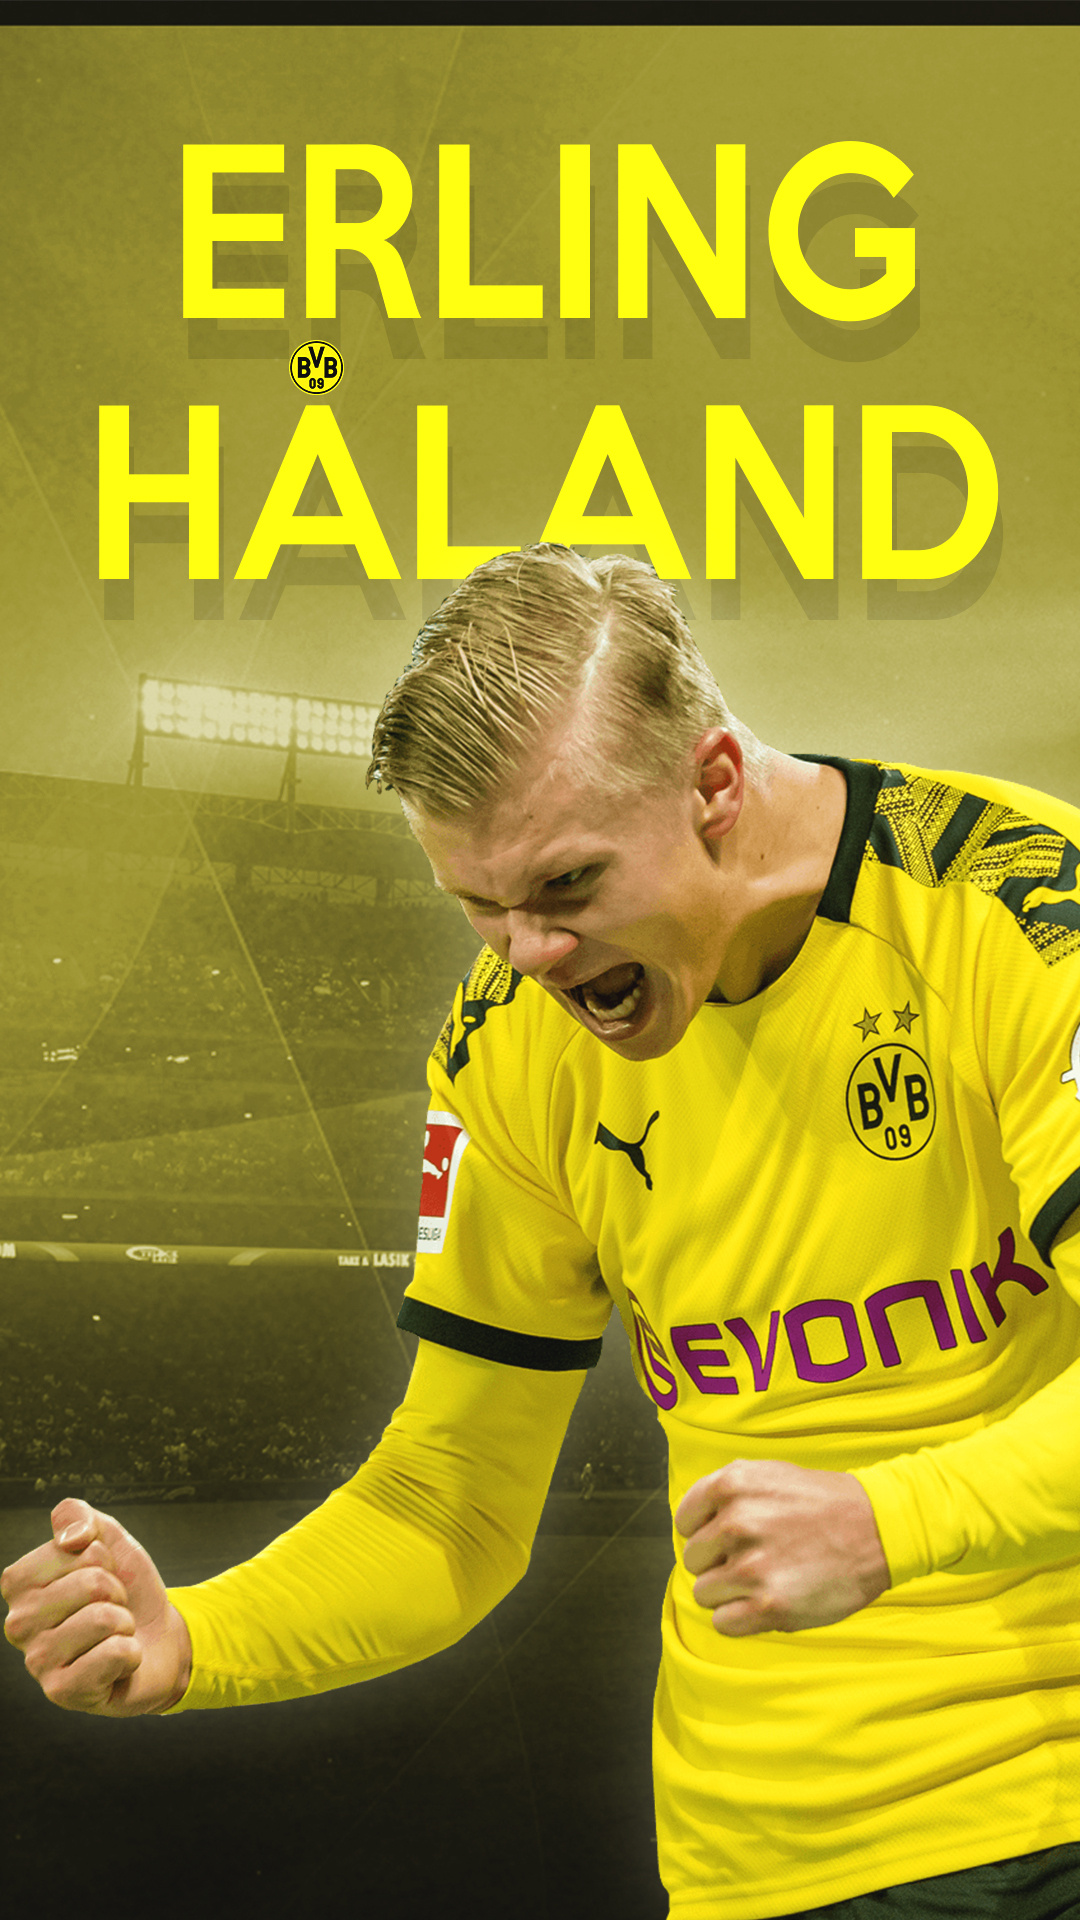 Sports Erling Braut Haland 1080x1920 Wallpaper Id 864583 Mobile Abyss